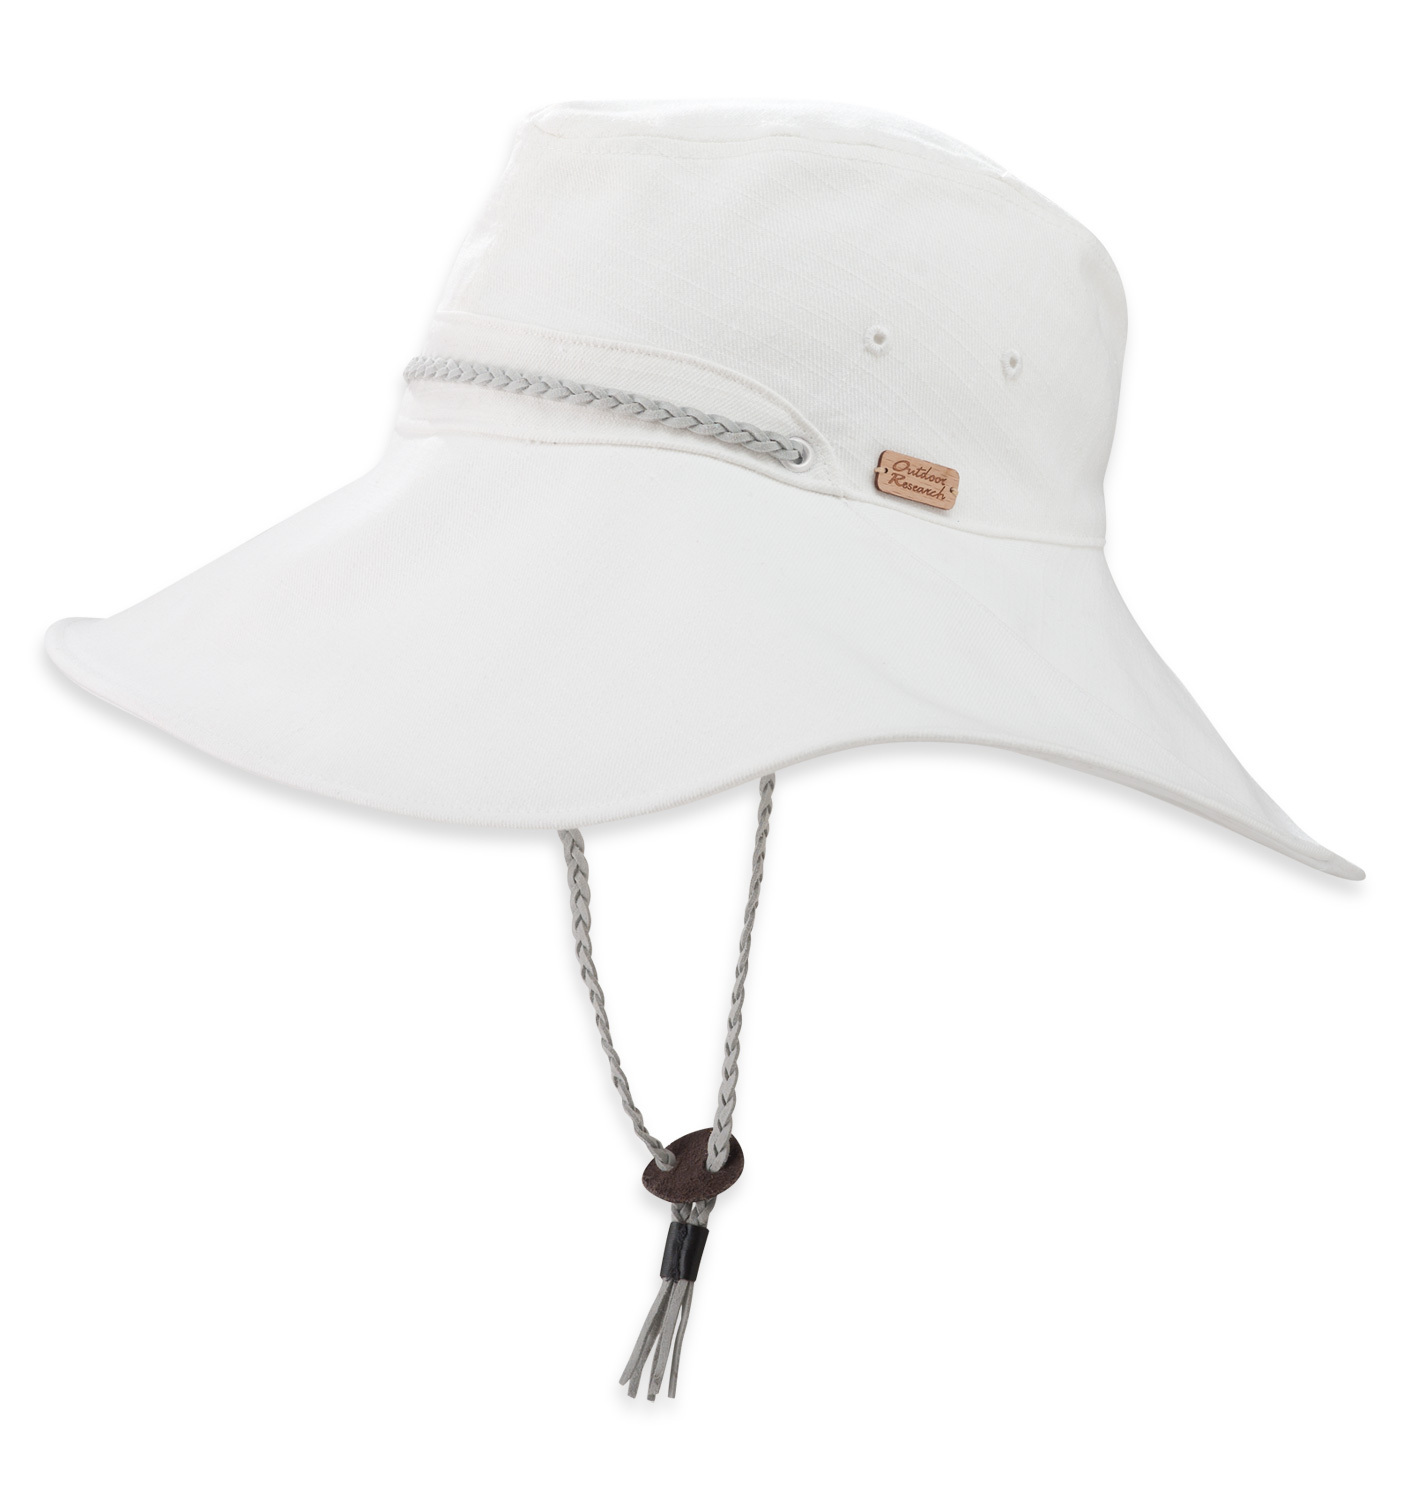 c66a753eb8e670 Women's Mojave Sun Hat - white | Outdoor Research